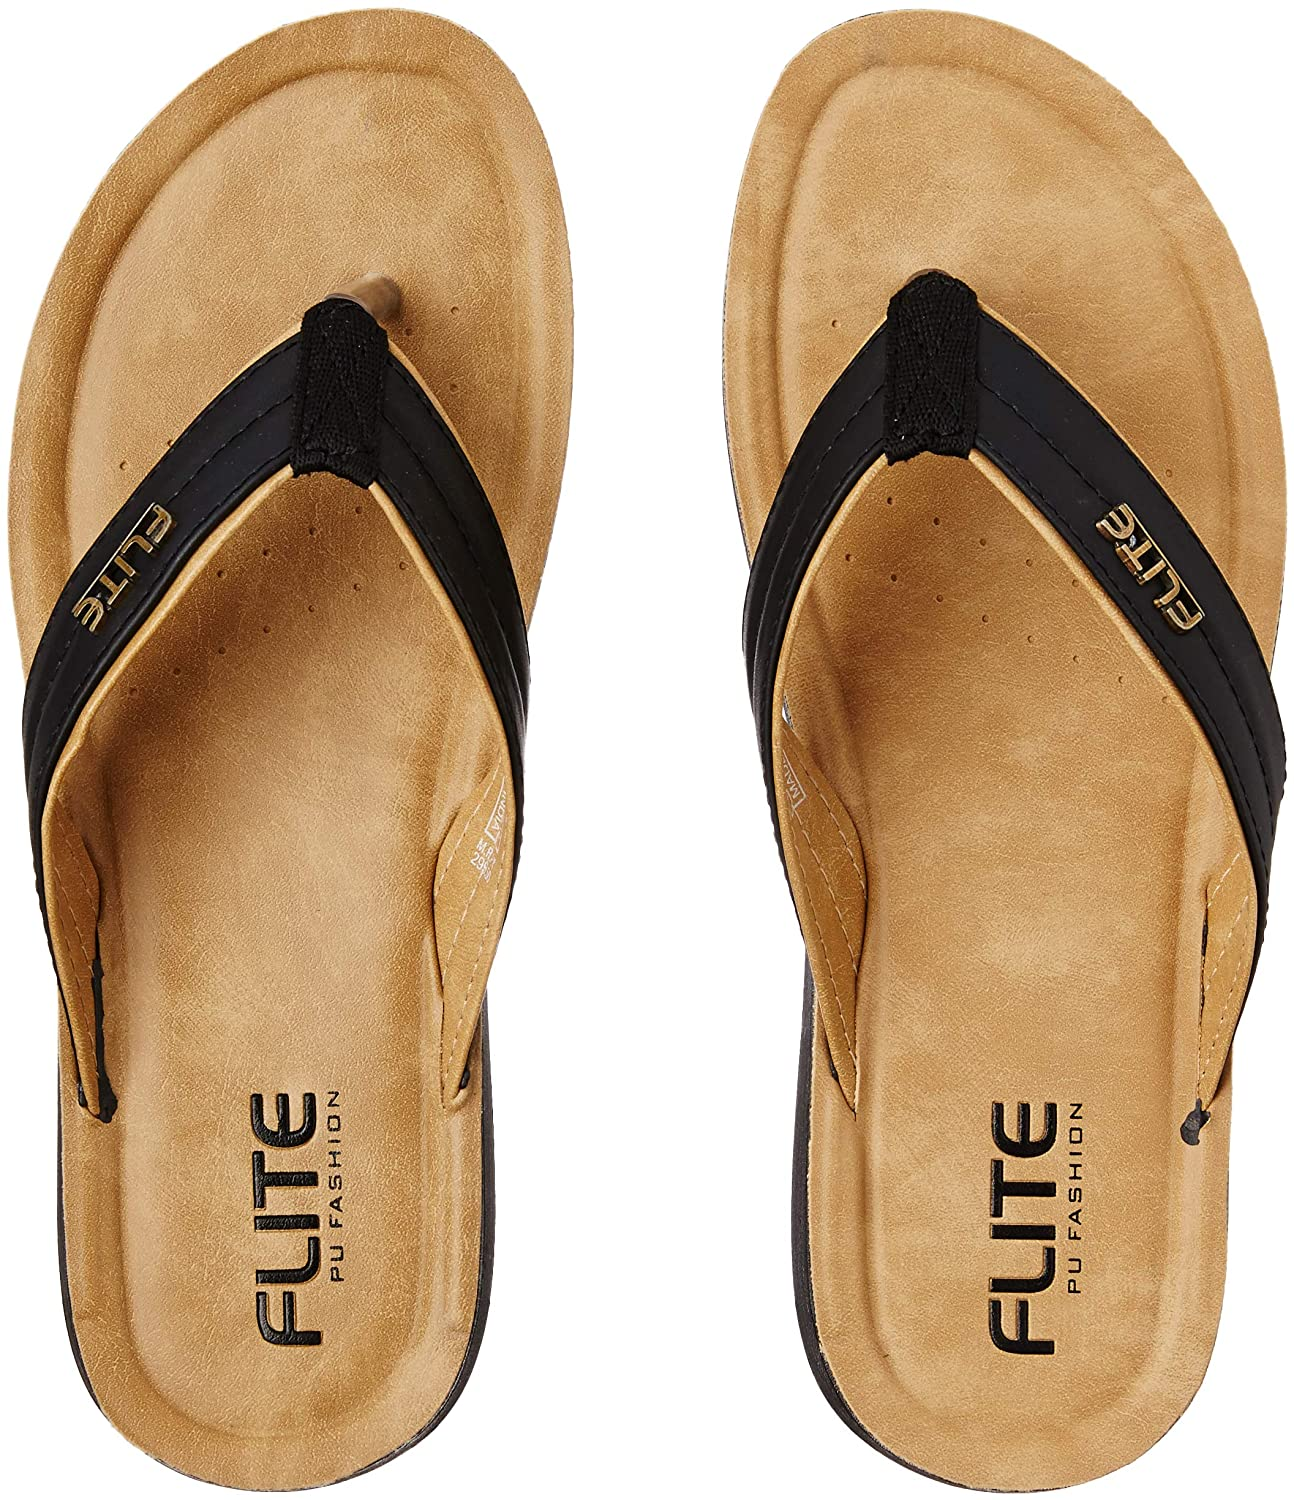 86cc6f647e3be FLITE Men s Flip Flops Thong Sandals  Buy Online at Low Prices in India -  Amazon.in